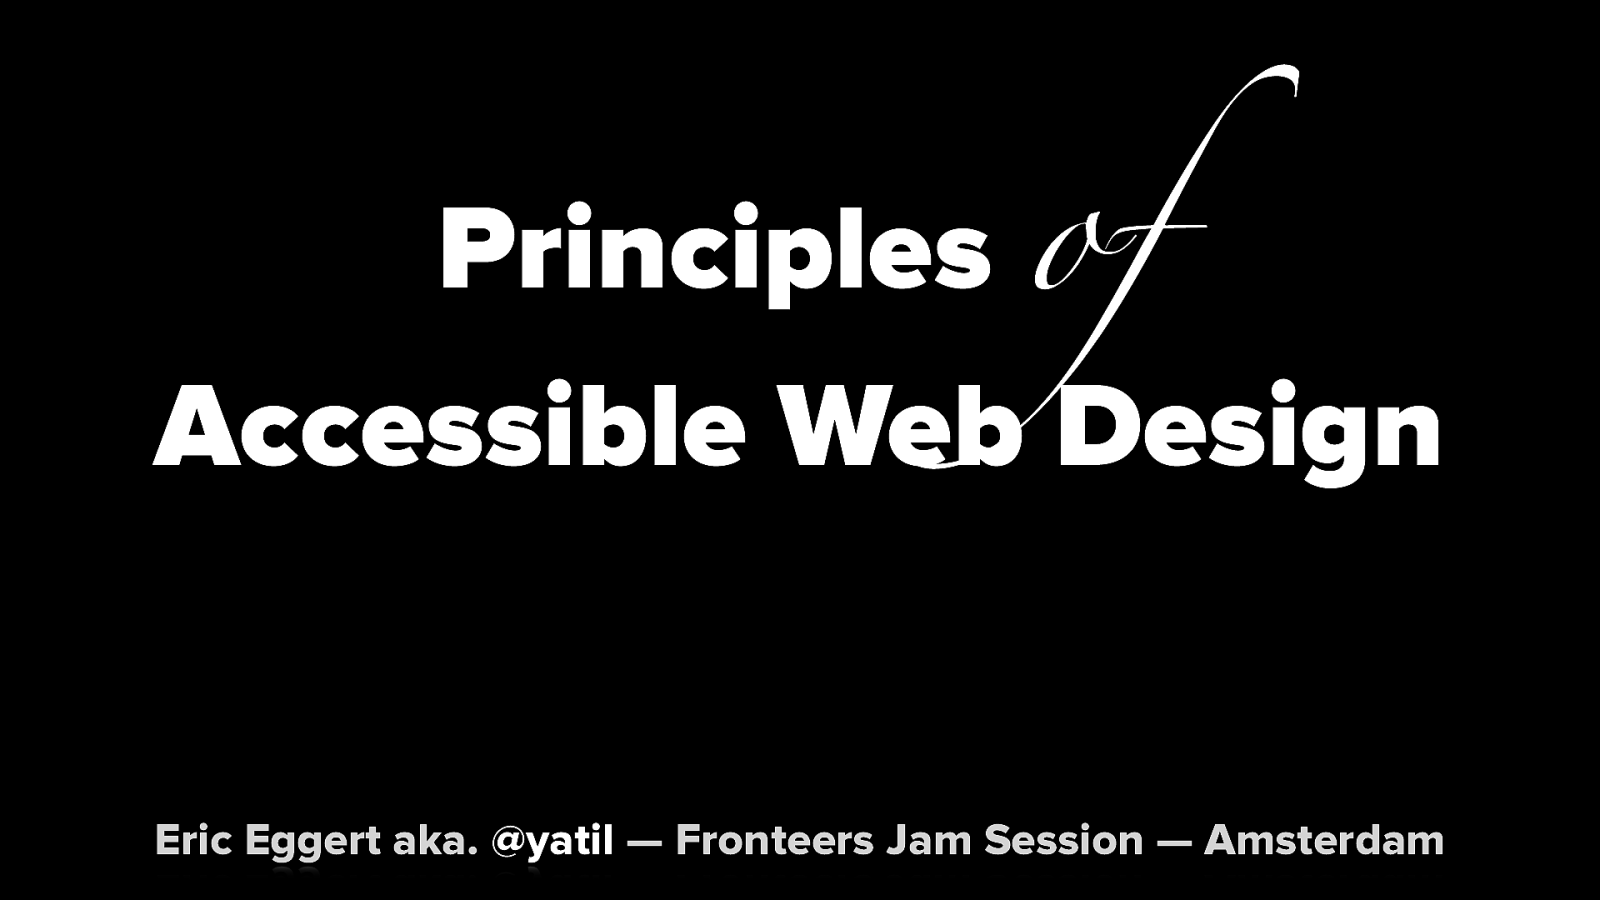 Principles of Accessible Web Design